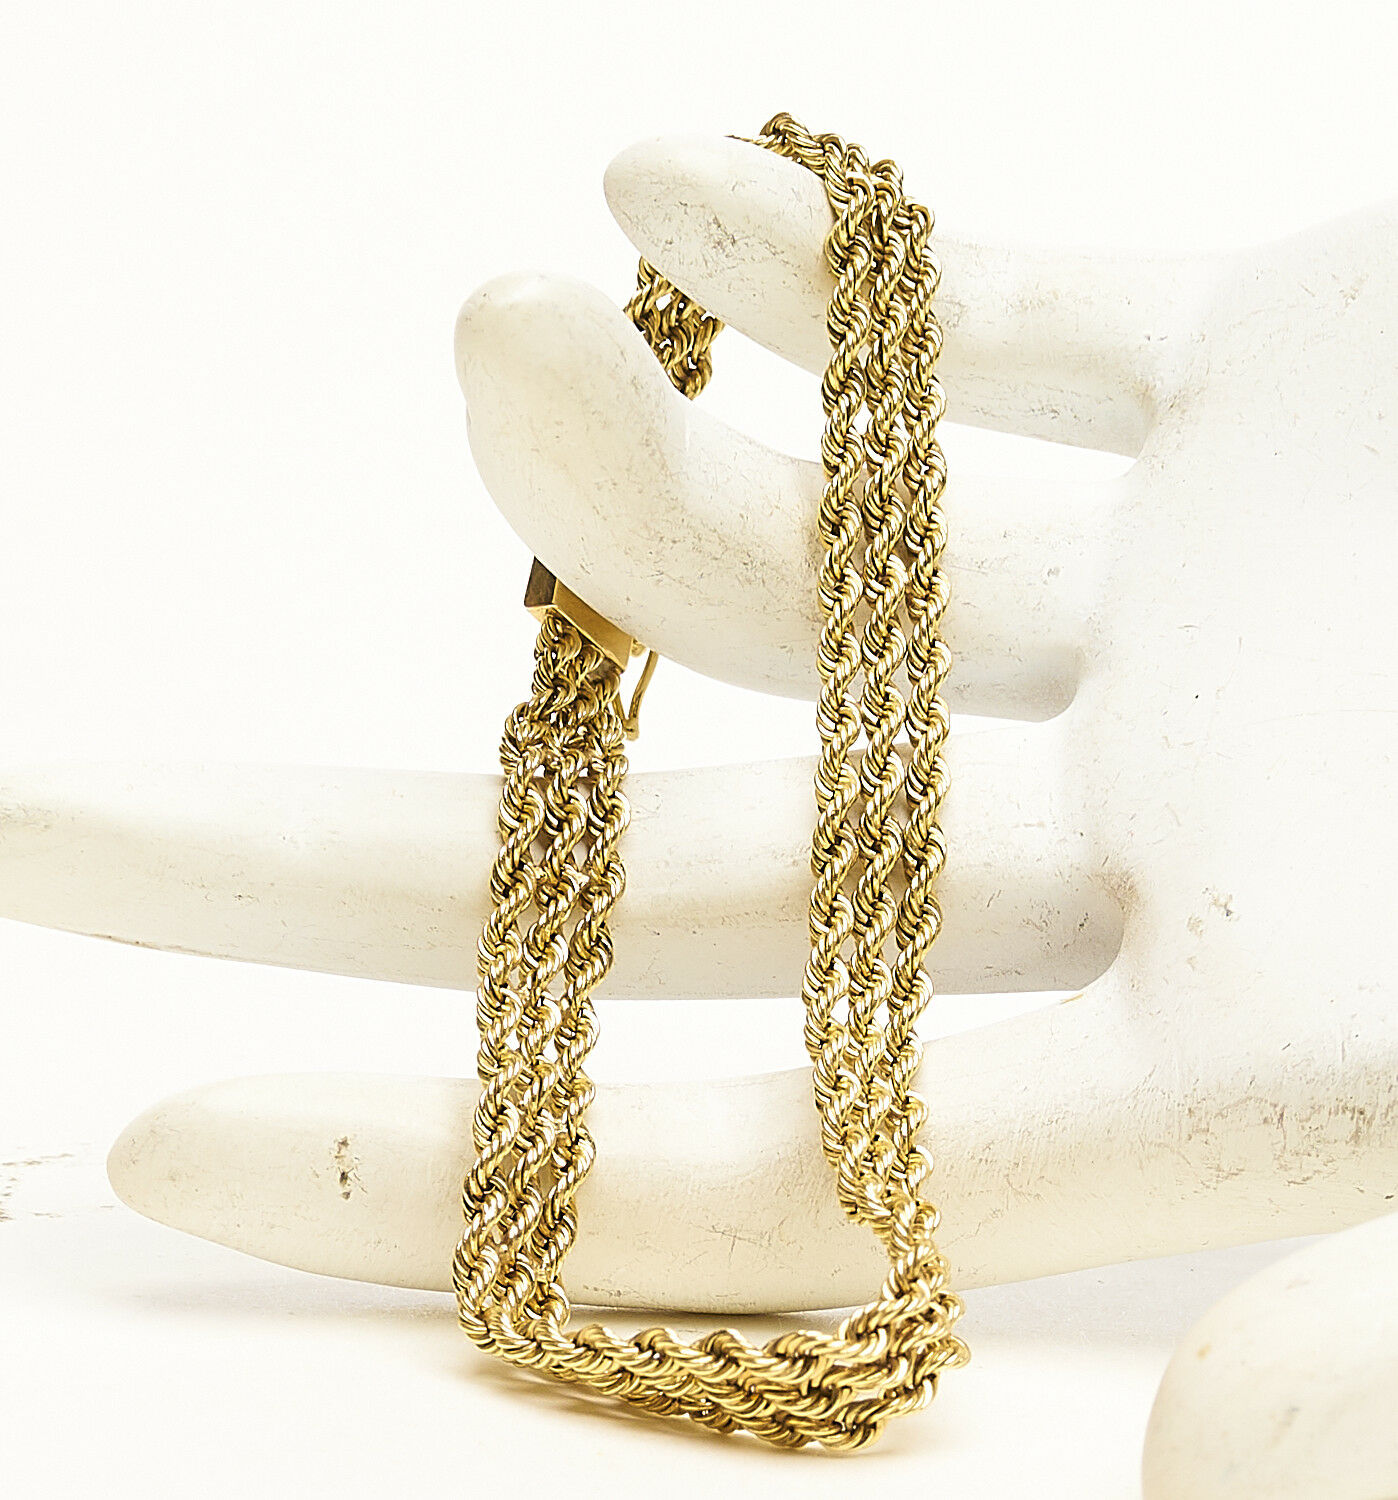 Authentic Yellow gold 14KT Rope Chain Bracelet Men's Womens 10.90g 55-30